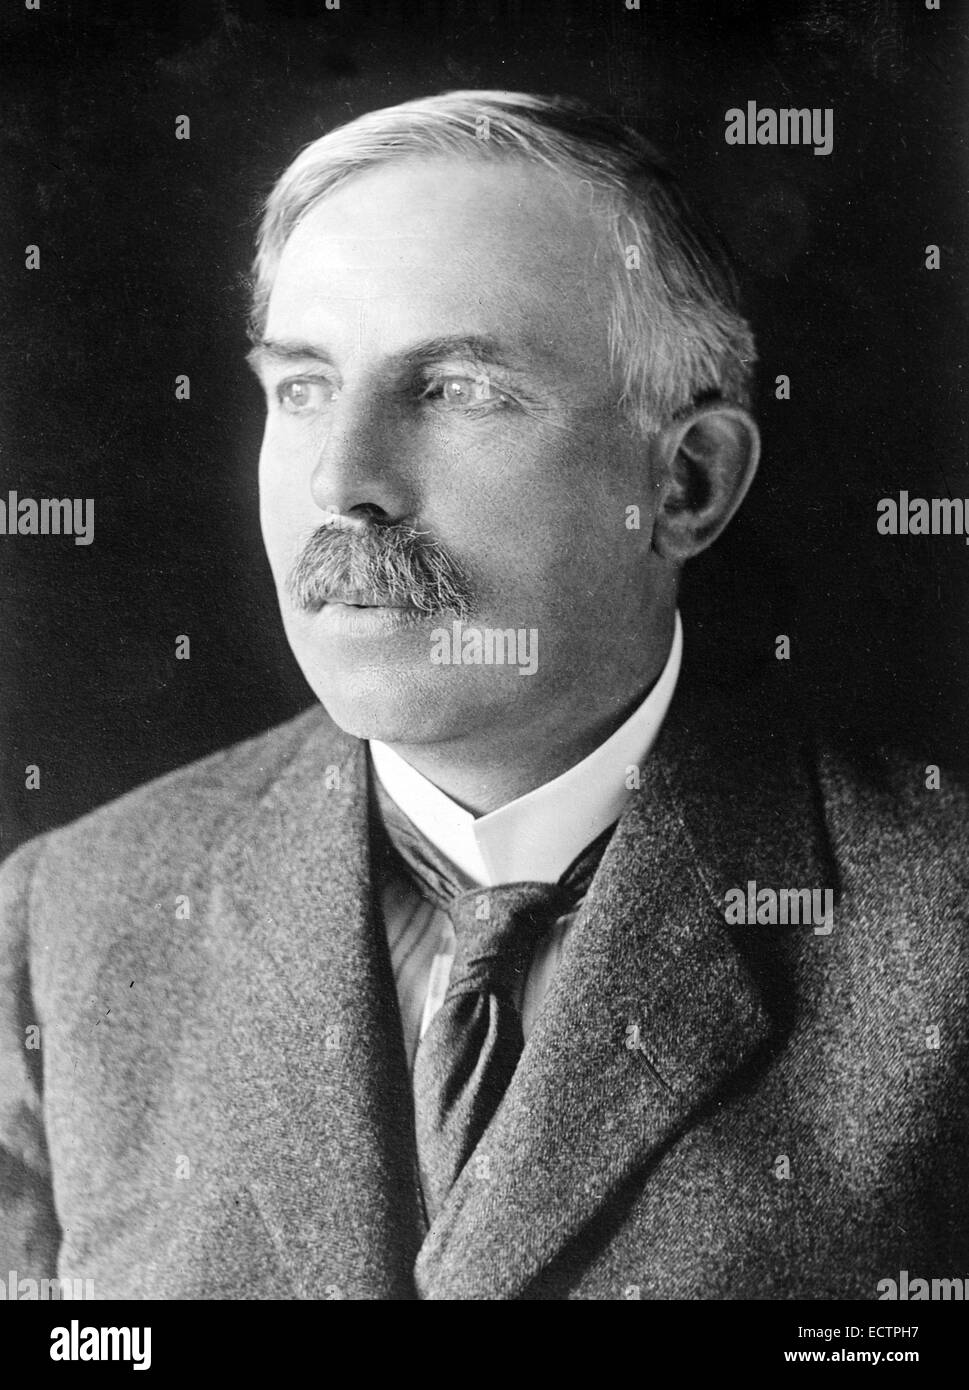 New Zealand chemist and Nobel Prize laureate Ernest Rutherford (1871-1937) Stock Photo